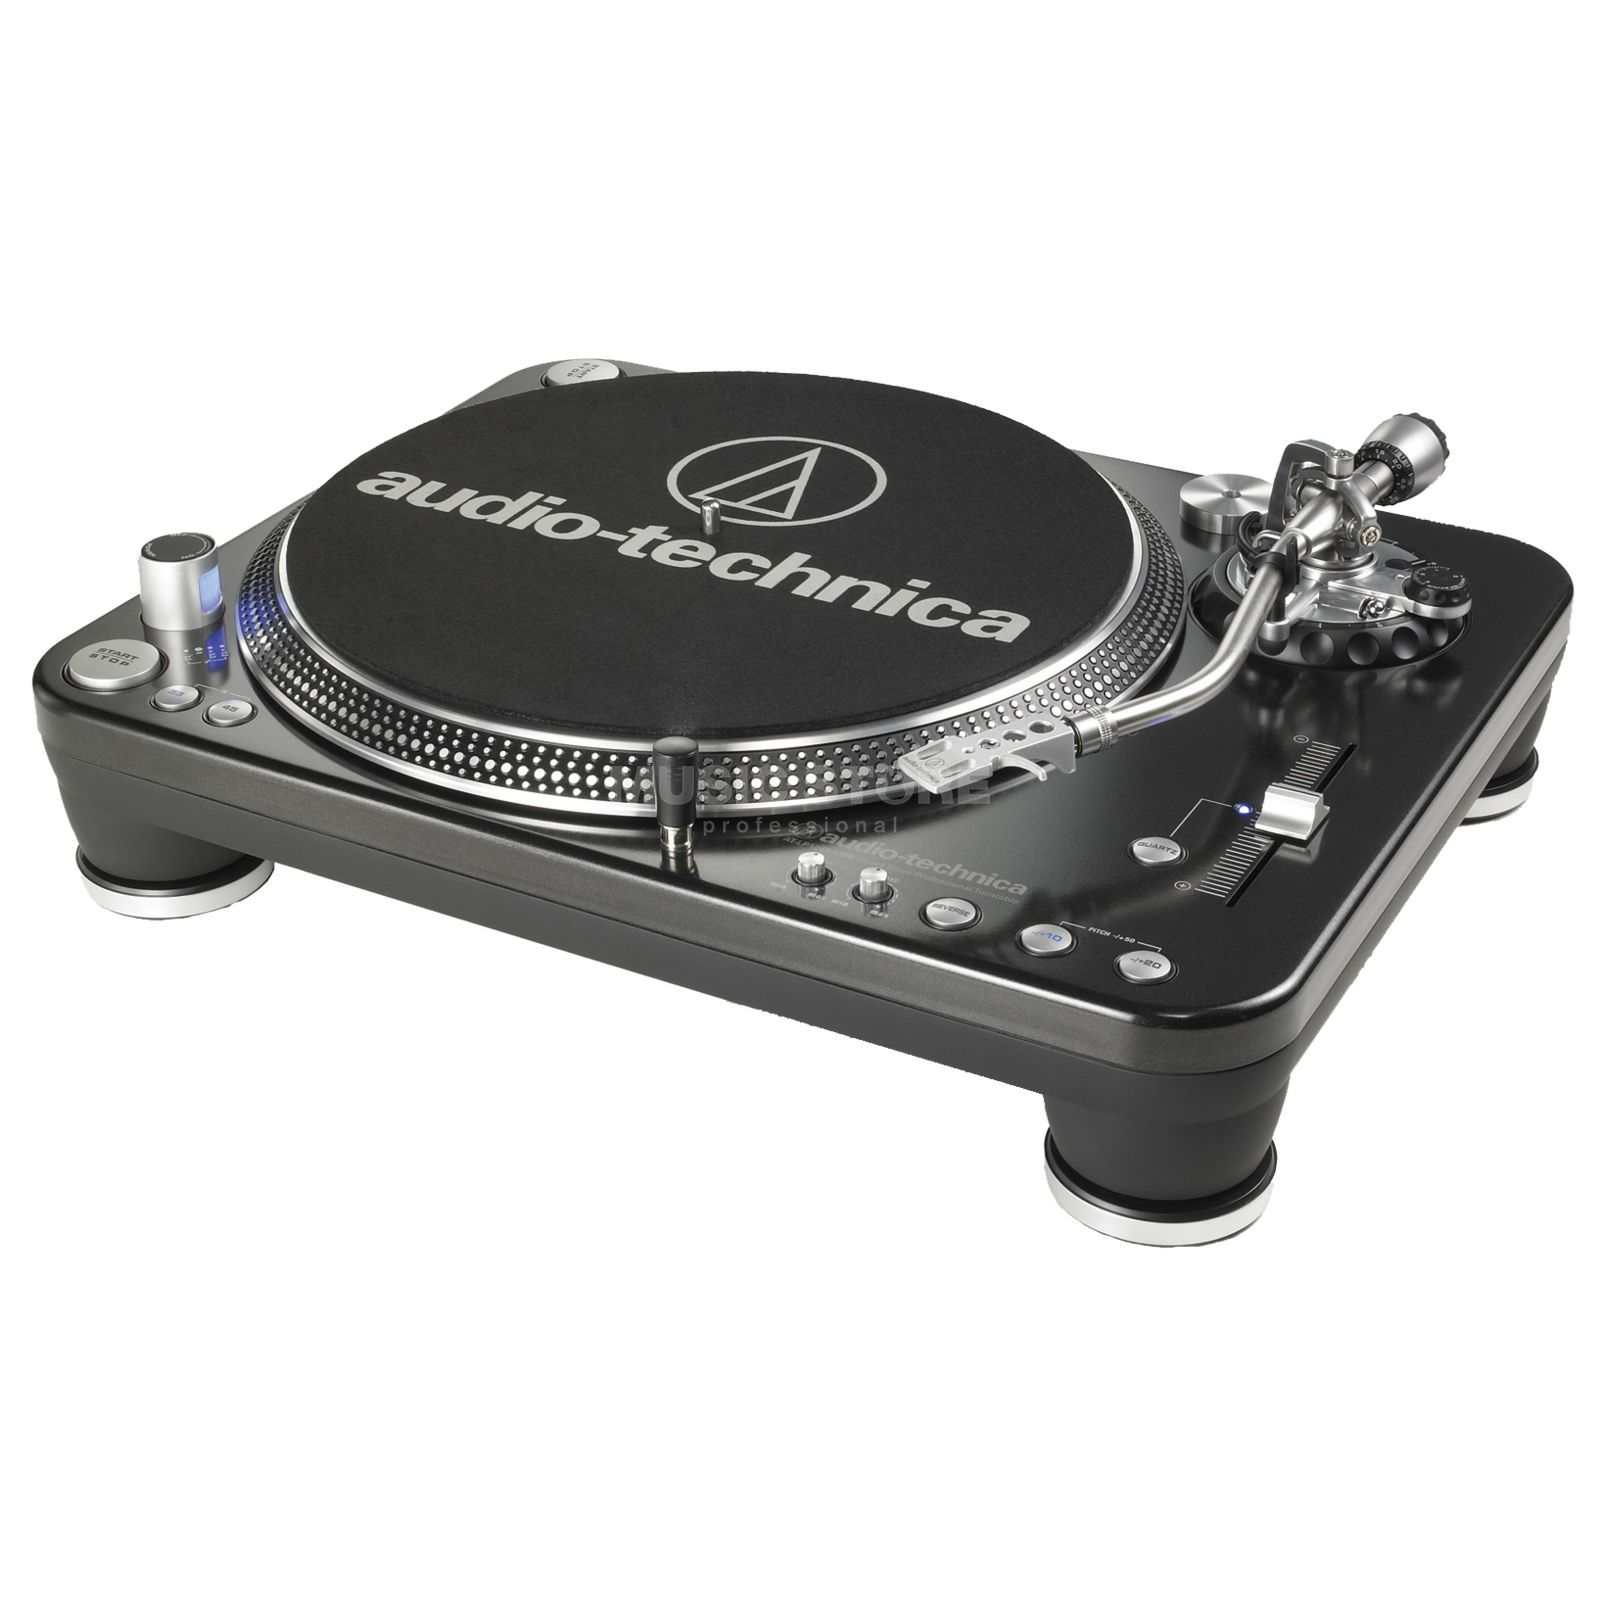 Audio-Technica AT-LP1240USB Turntable, Direct Drive USB Product Image